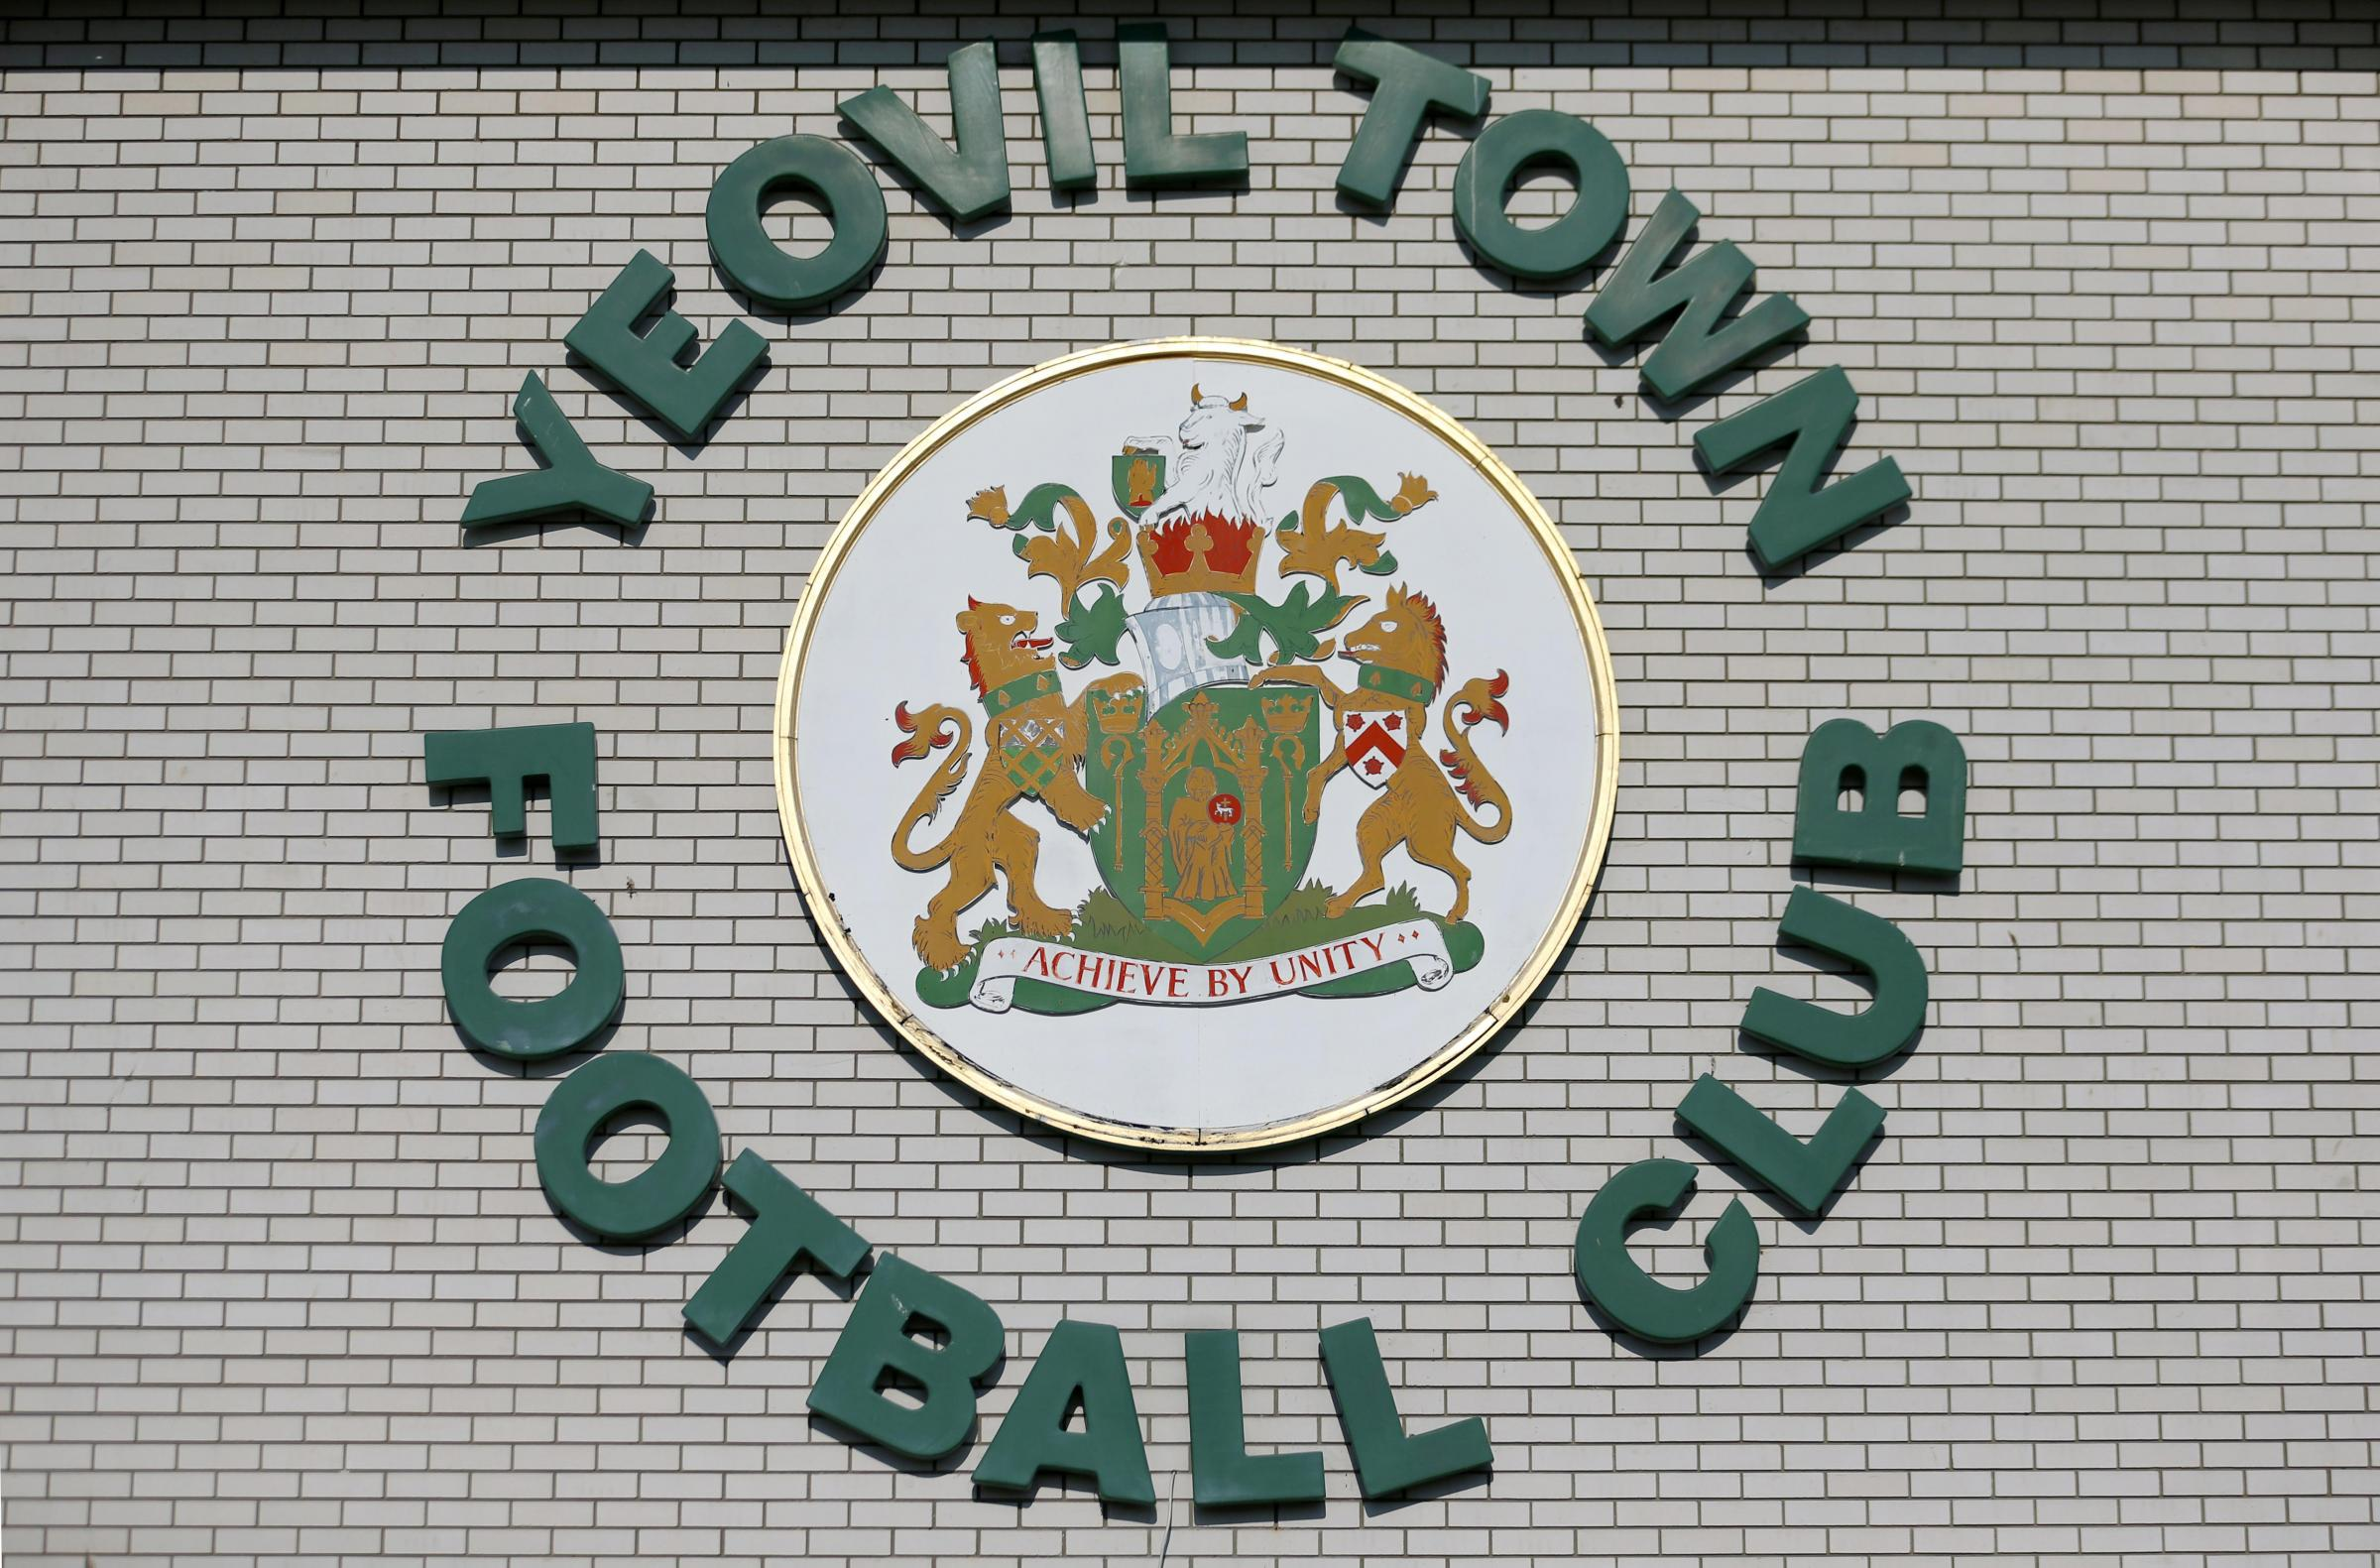 MATCH REPORT Sky Bet Championship: Yeovil Town v Barnsley - Glovers lose relegation clash